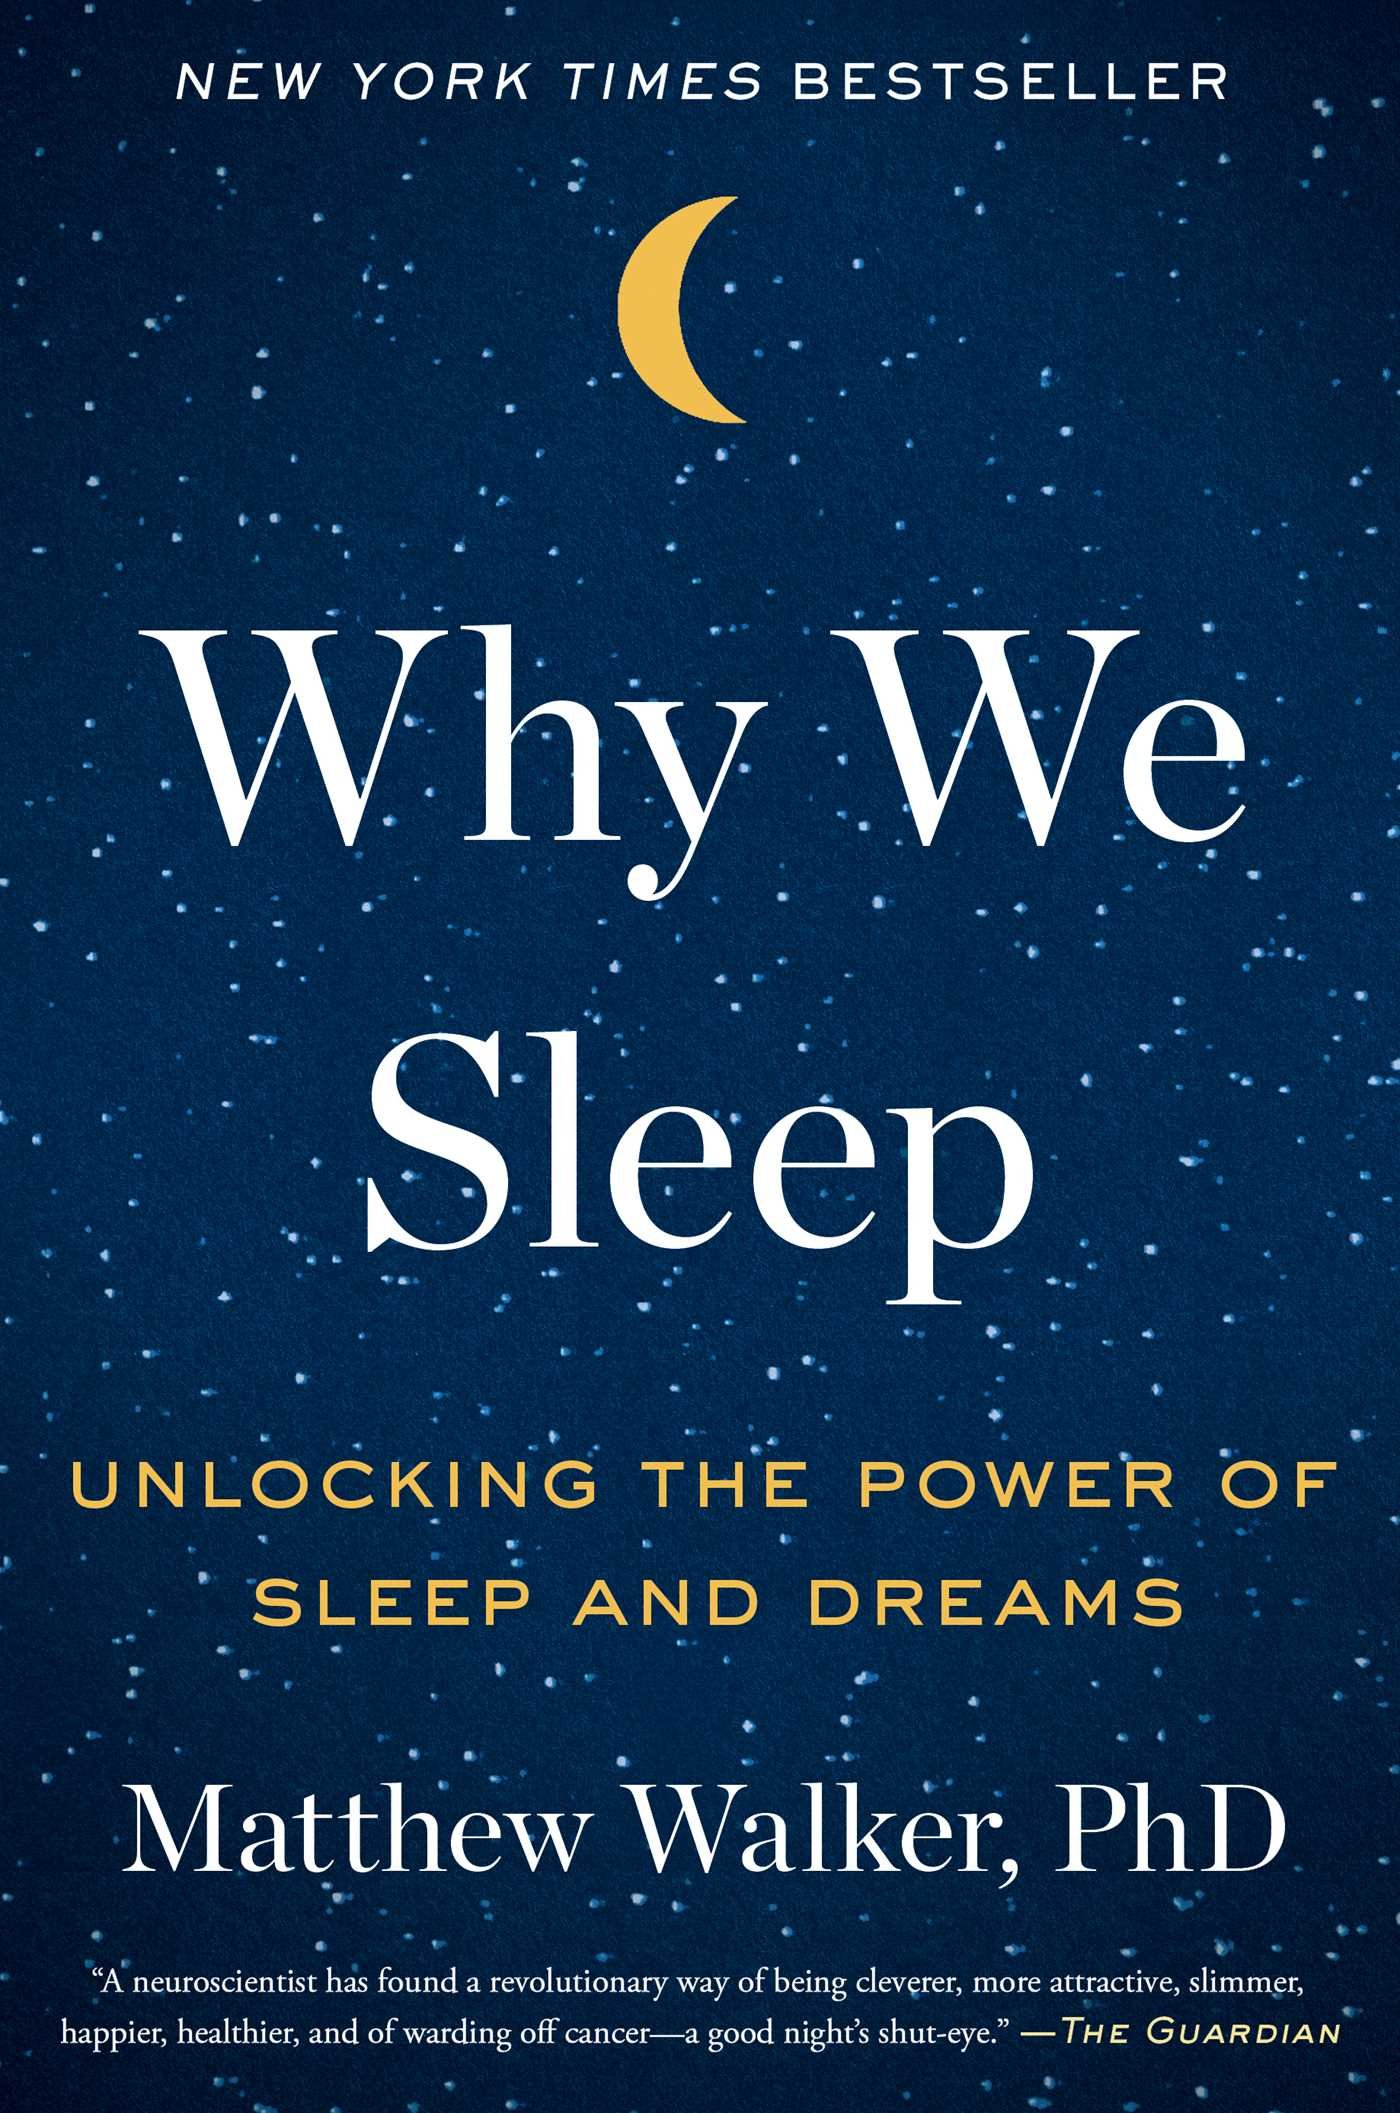 Why We Sleep: Unlocking the Power of Sleep and Dreams: Amazon.es: Matthew Walker: Libros en idiomas extranjeros